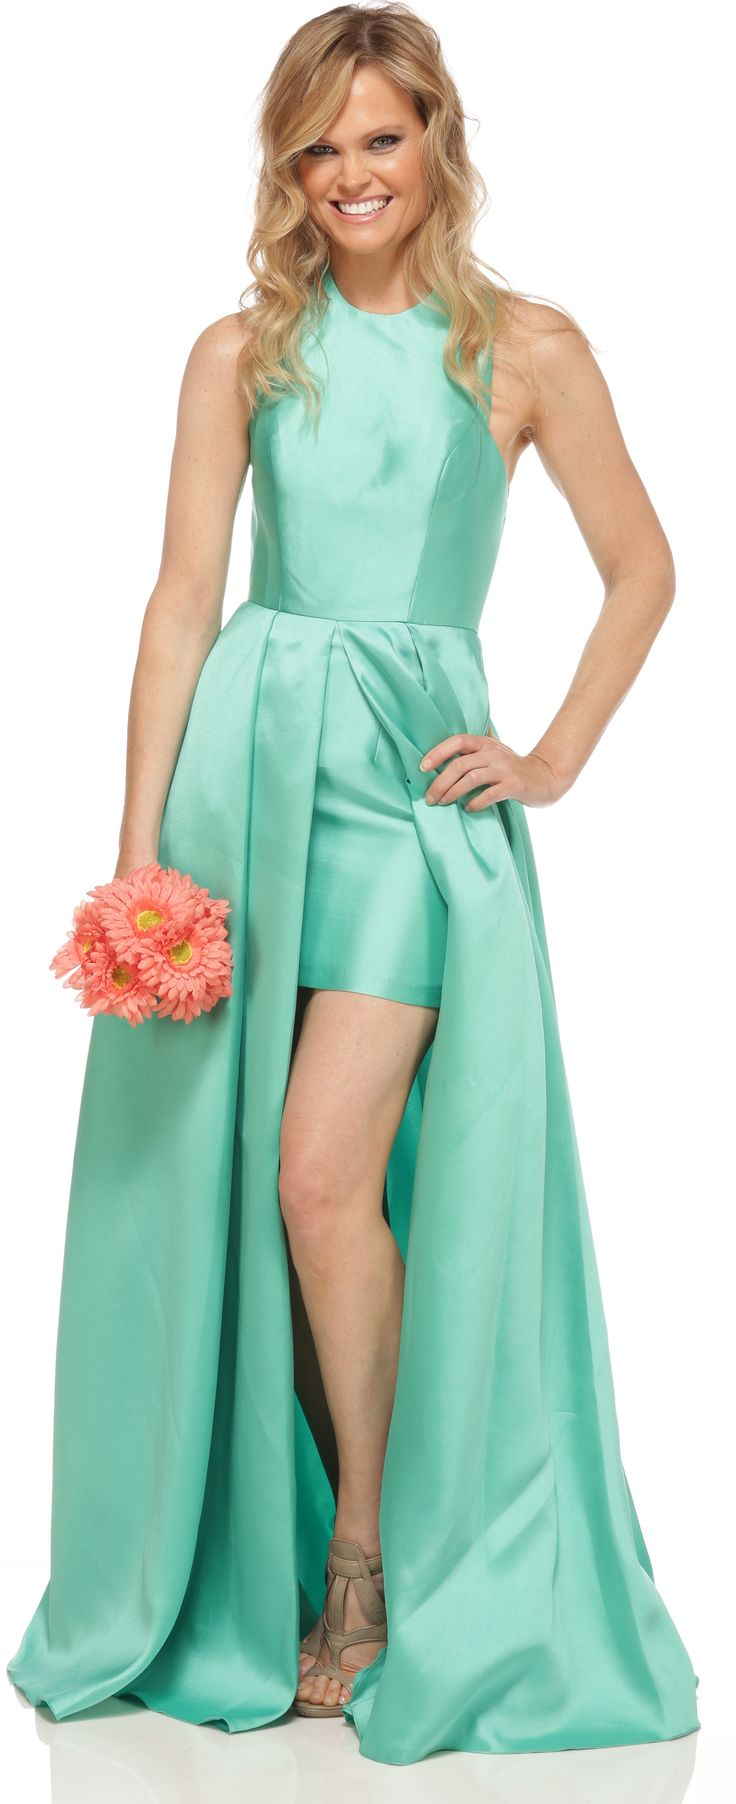 14 best TRENDING: High-Low images on Pinterest | Pageant dresses ...